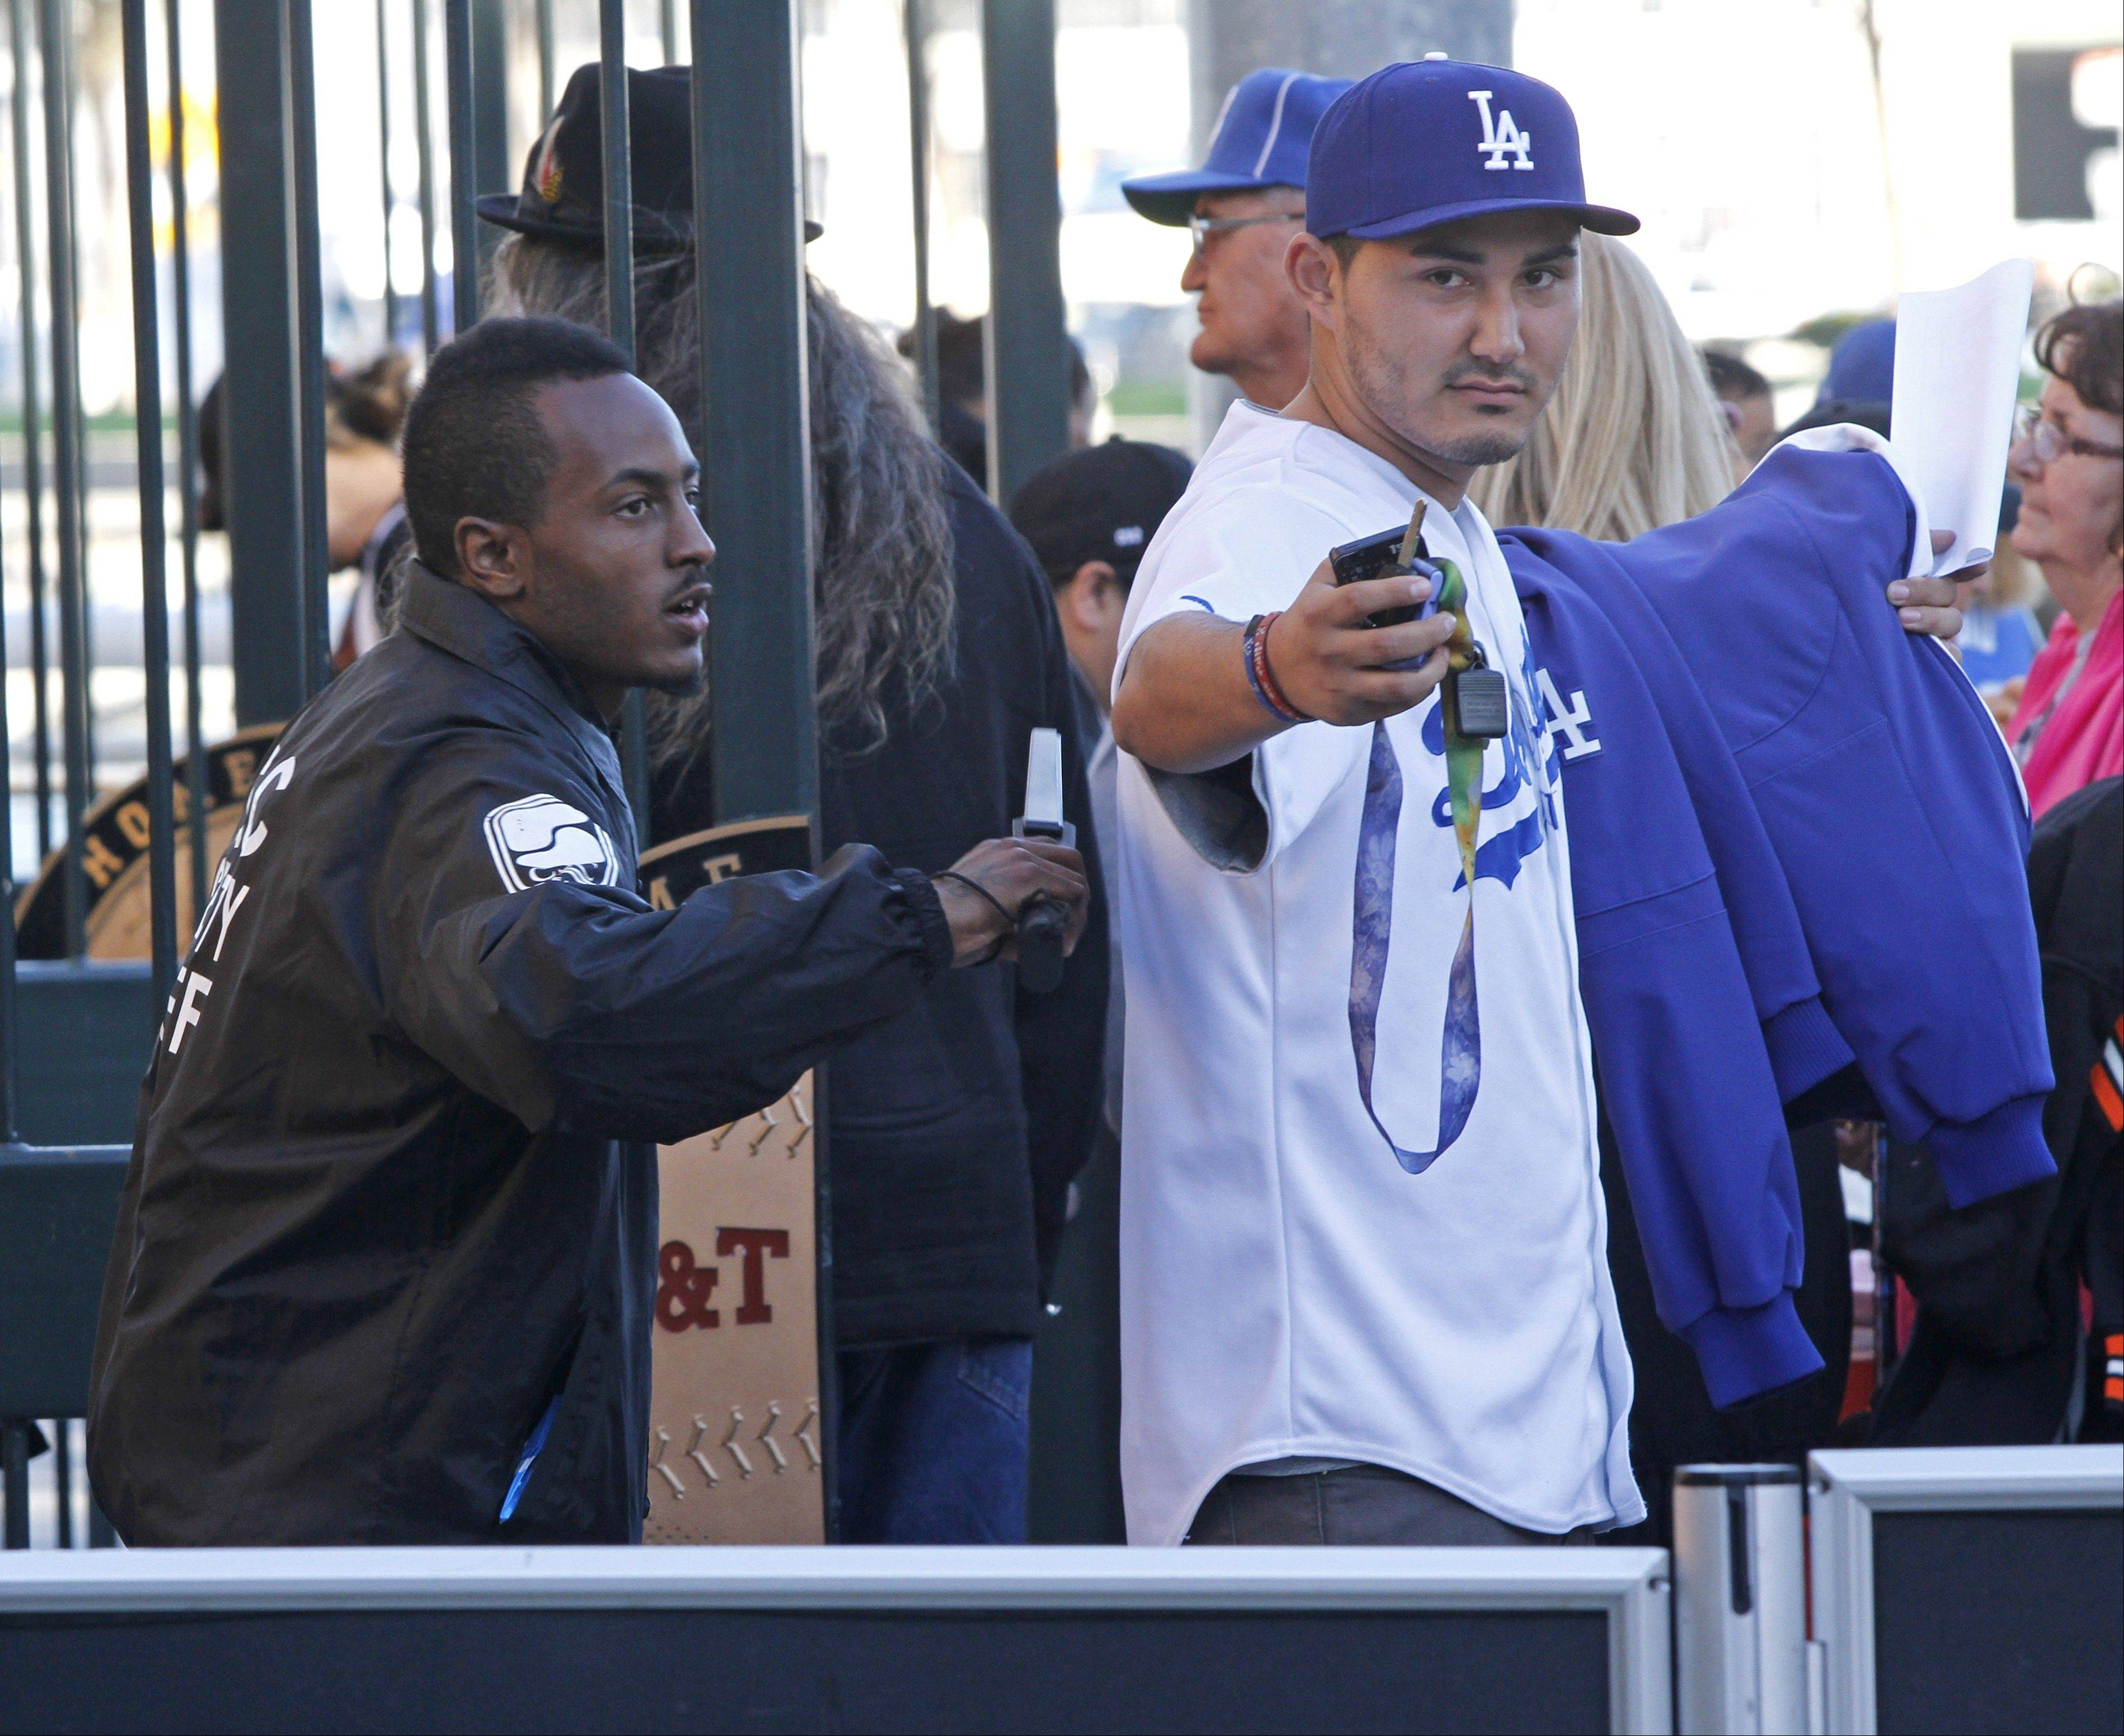 A security guard checks a Los Angeles Dodgers fan at the stadium entrance before Thursday�s game between the Giants and the Dodgers in San Francisco.